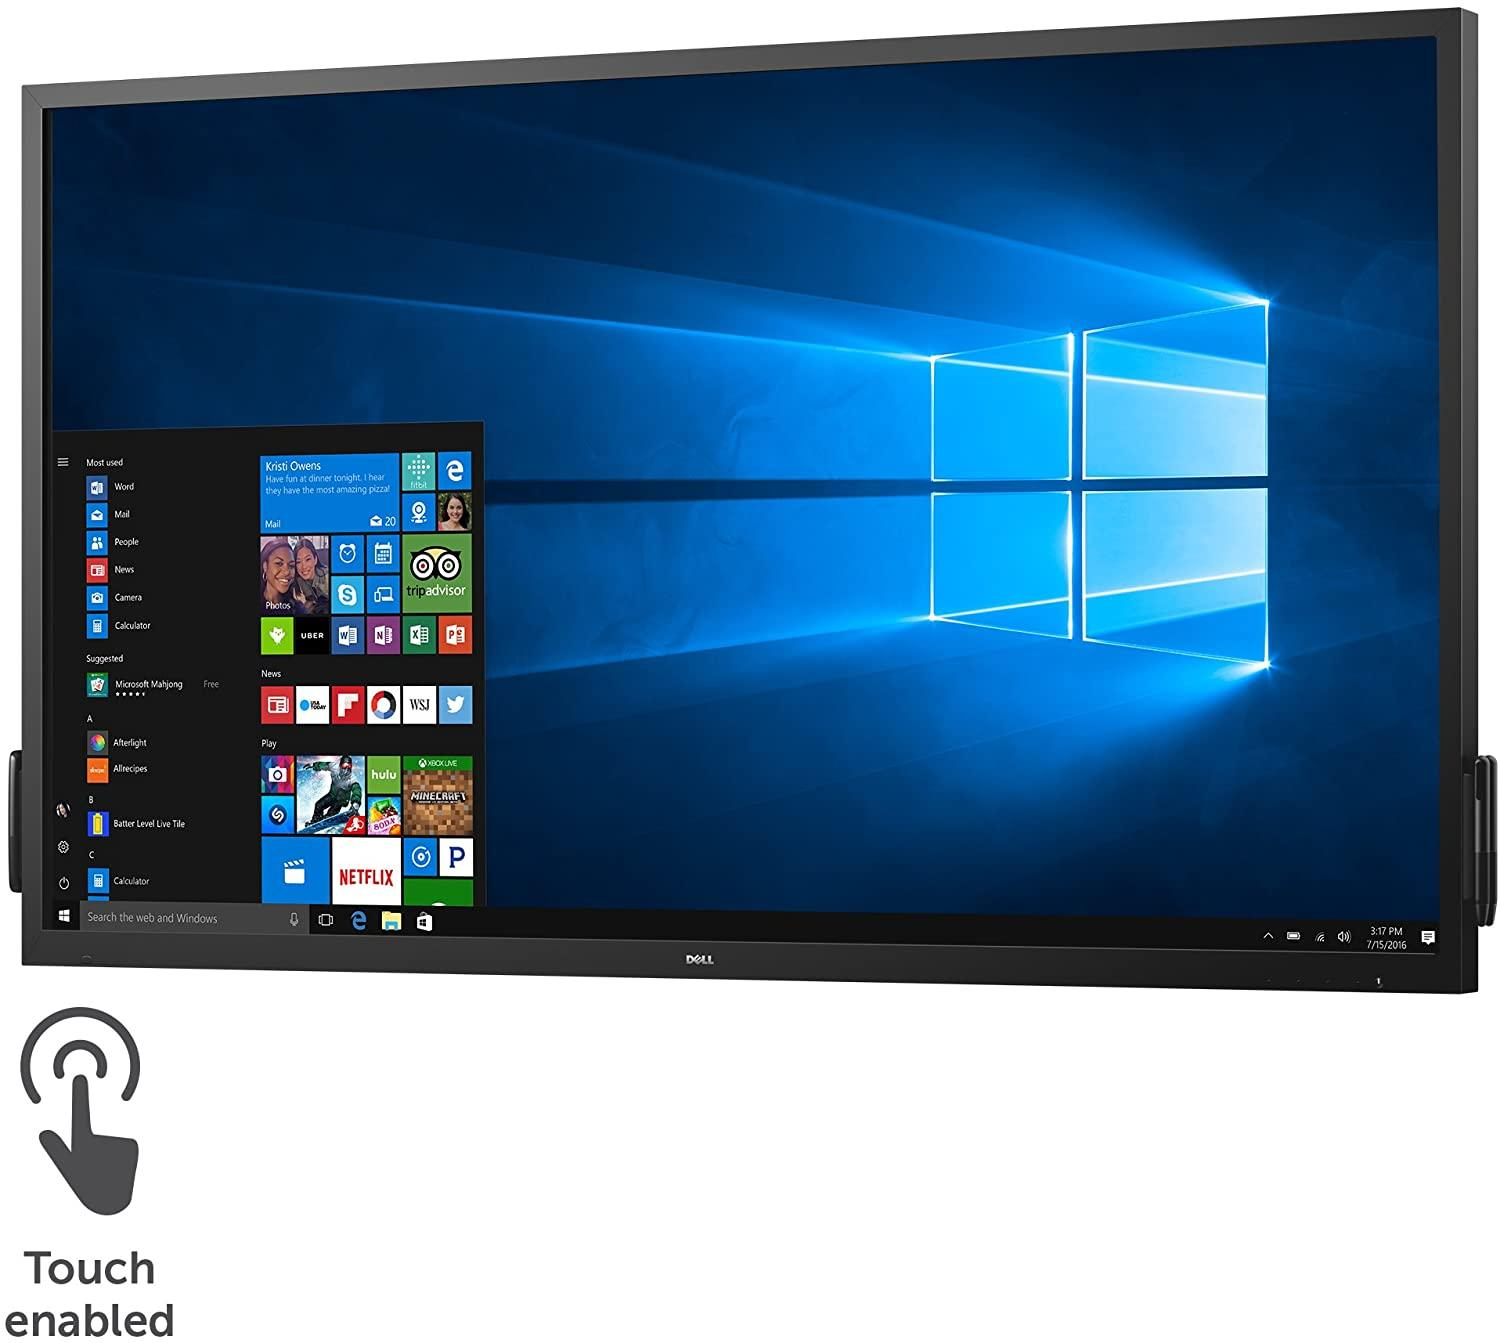 "Монитор DELL C7017T Dell. DELL C7017T, 69.5"",16:9, VA, 10 points multi touch, 1920x1080, 6ms, 400cd/m2, 4000:1, HDMIx2, VGA, DP, 2x10W Spk, 3xUSB, Black, 3 Y"